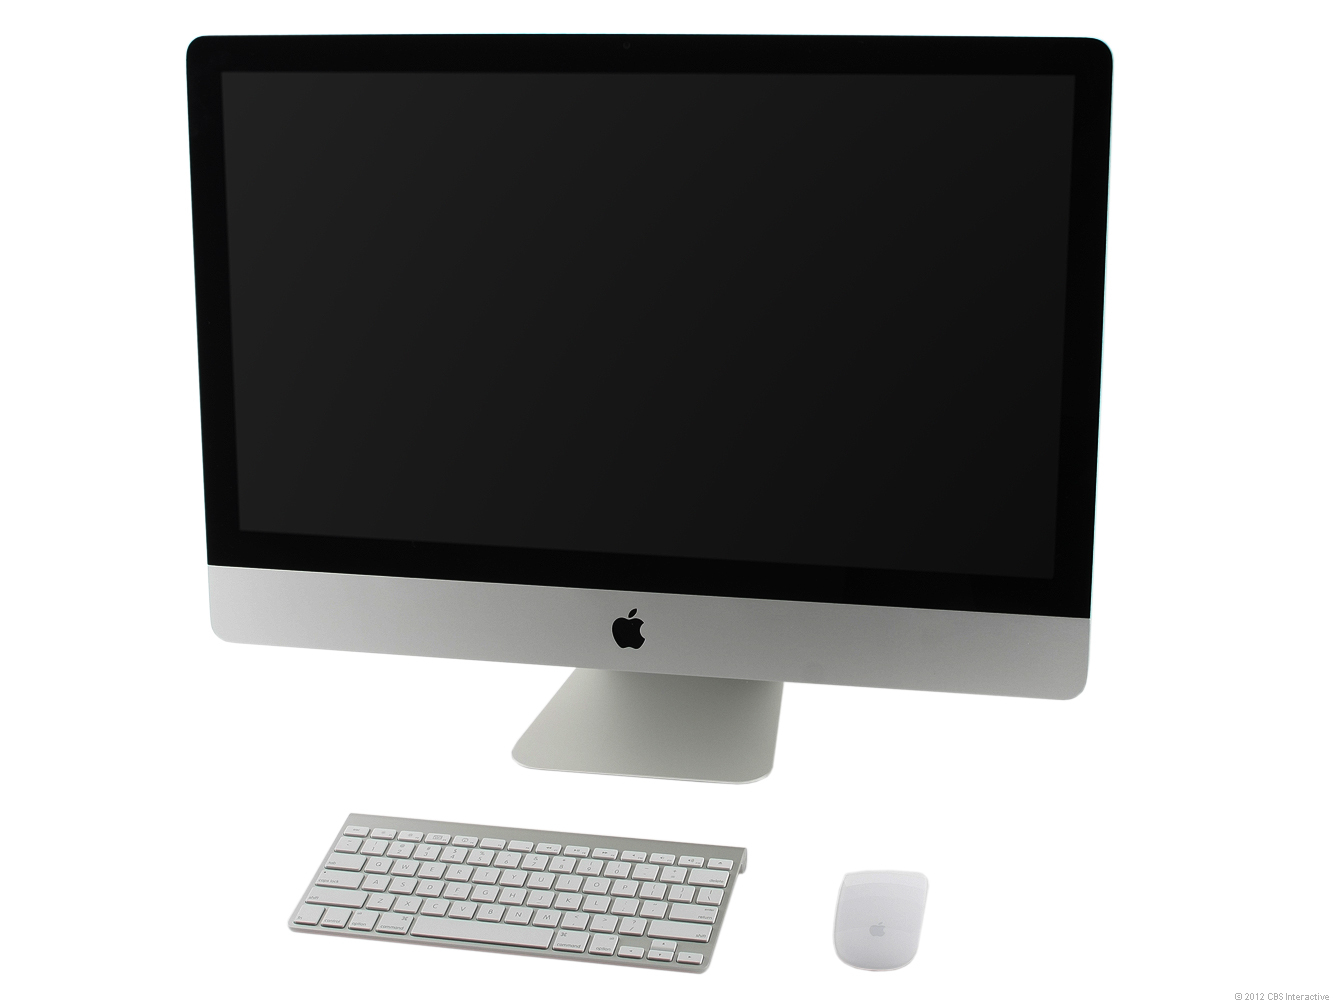 Apple's 27-inch iMac is both a luxury PC and a specialized all-in-one.